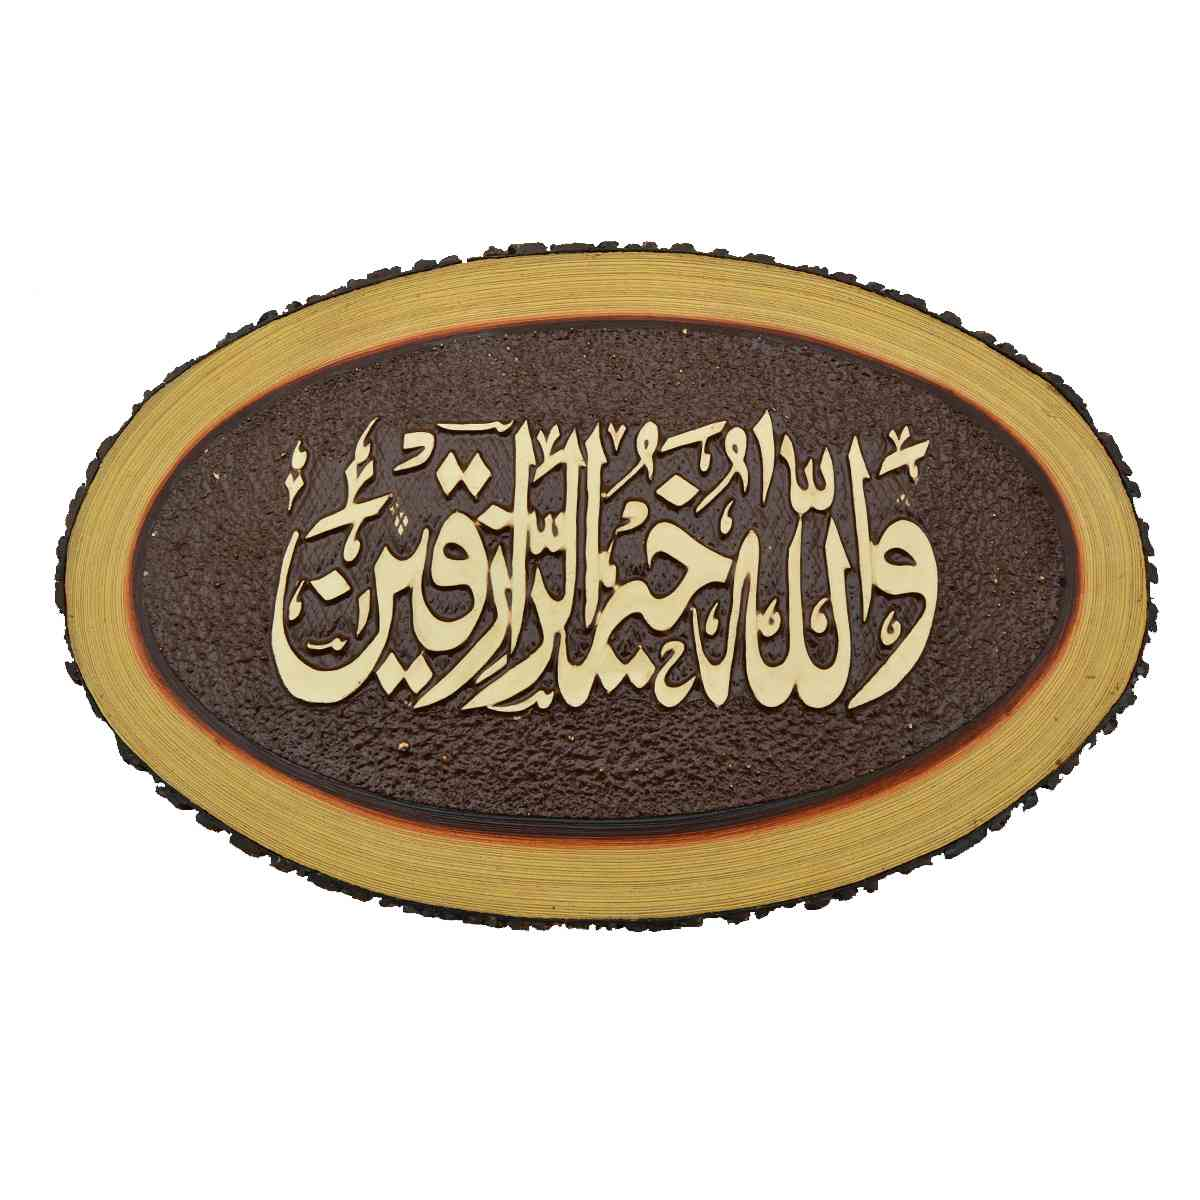 Wooden Calligraphy Frame for Room Decoration (Width 17 Inch x Height 10 Inch x Depth 1.5 Inch)